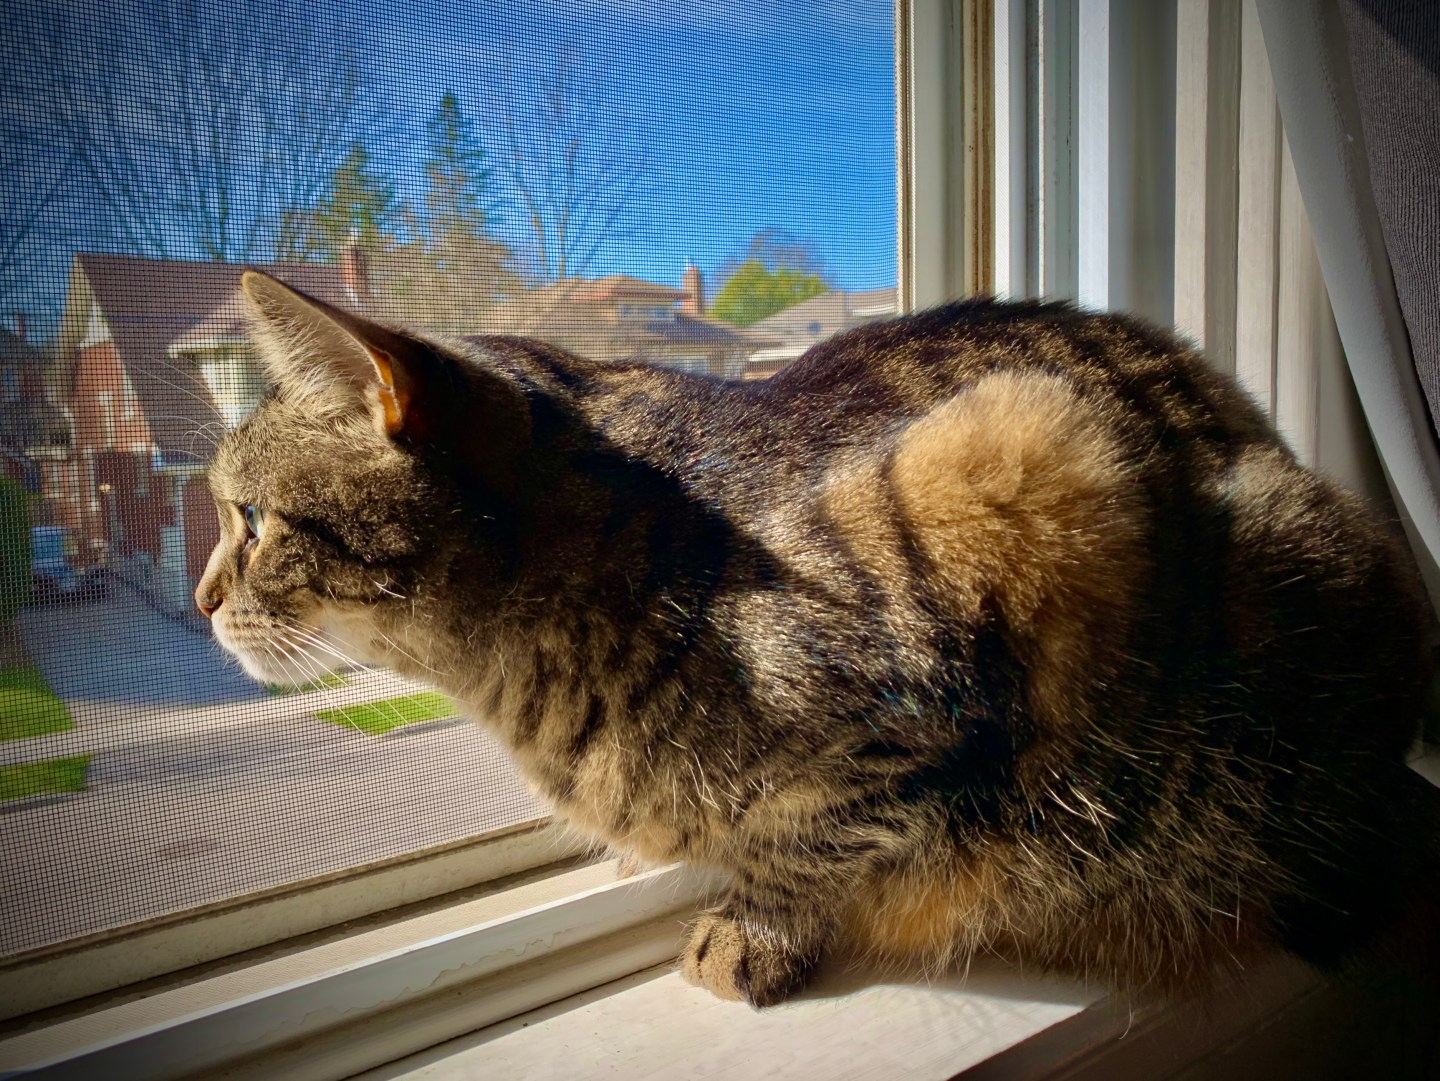 cat looking out window intently